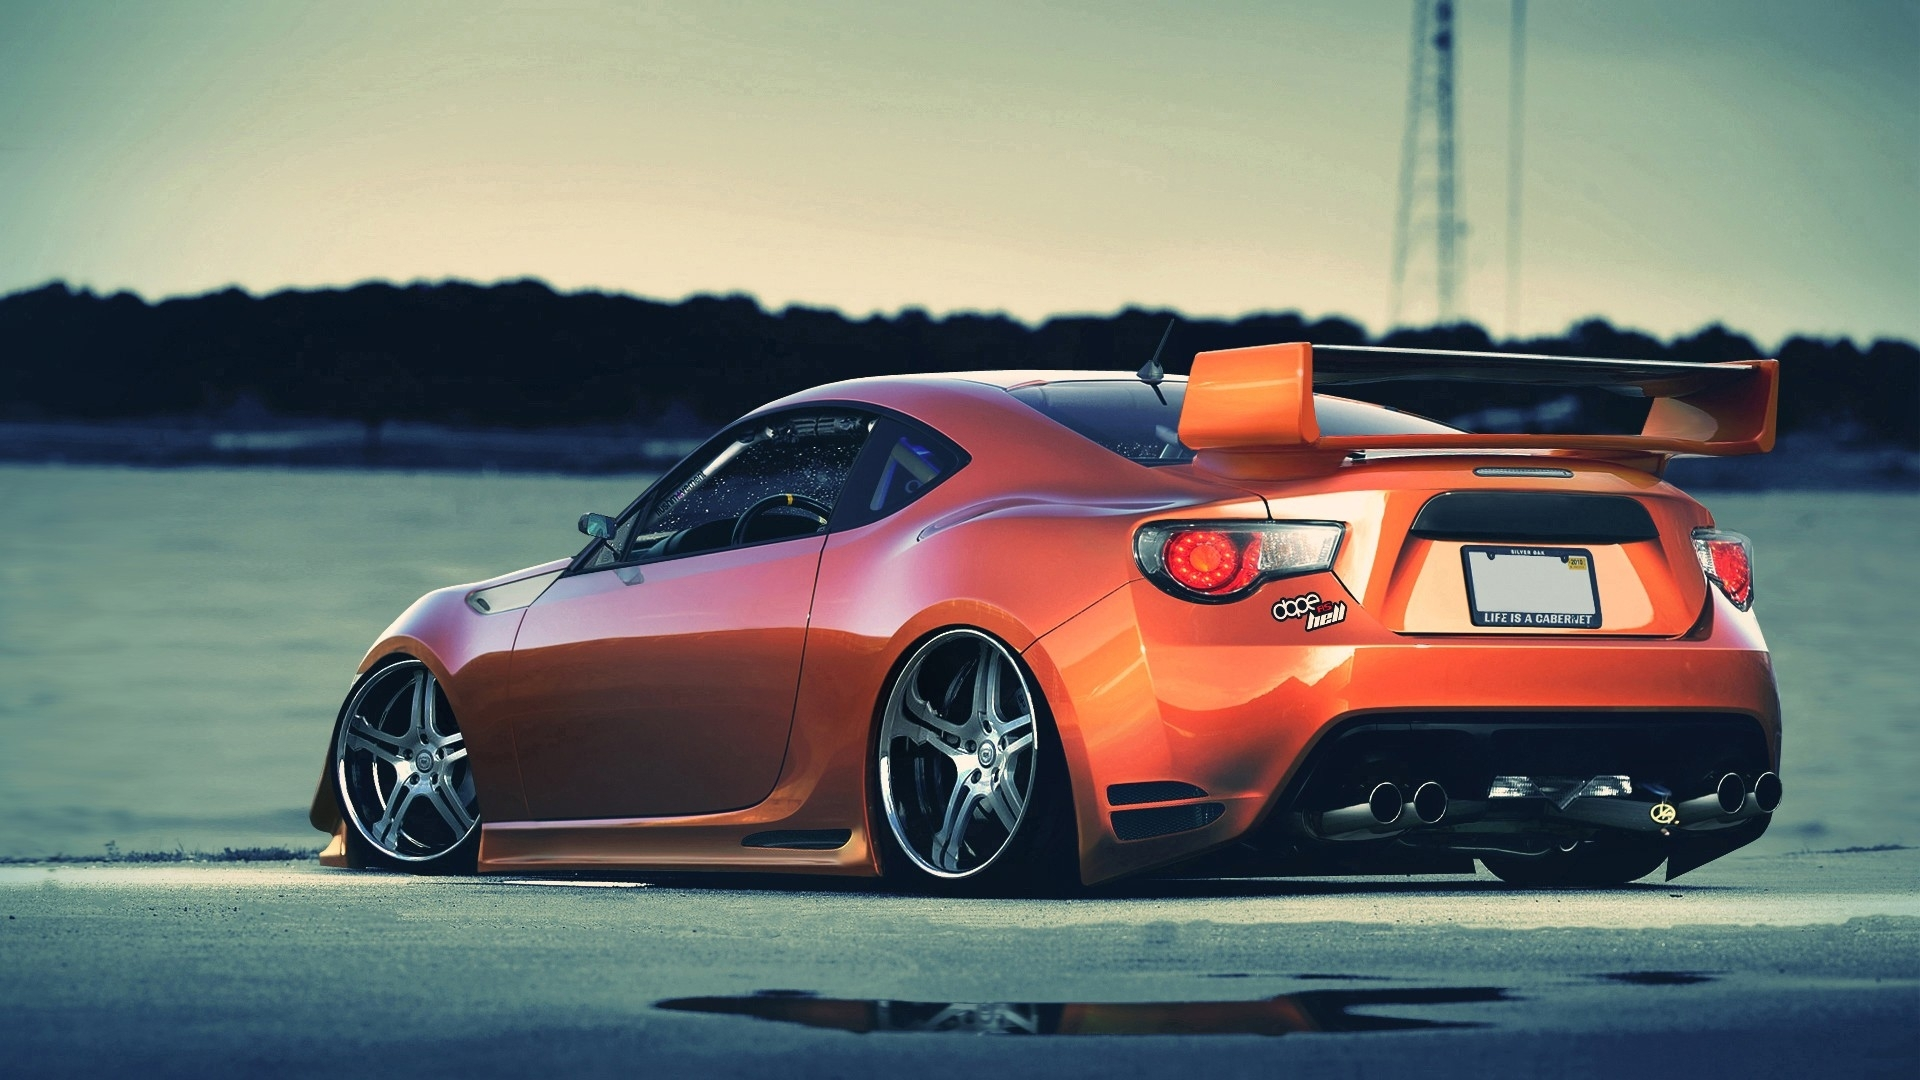 cars tuning toyota gt86 wallpaper 1920x1080 30260. Black Bedroom Furniture Sets. Home Design Ideas